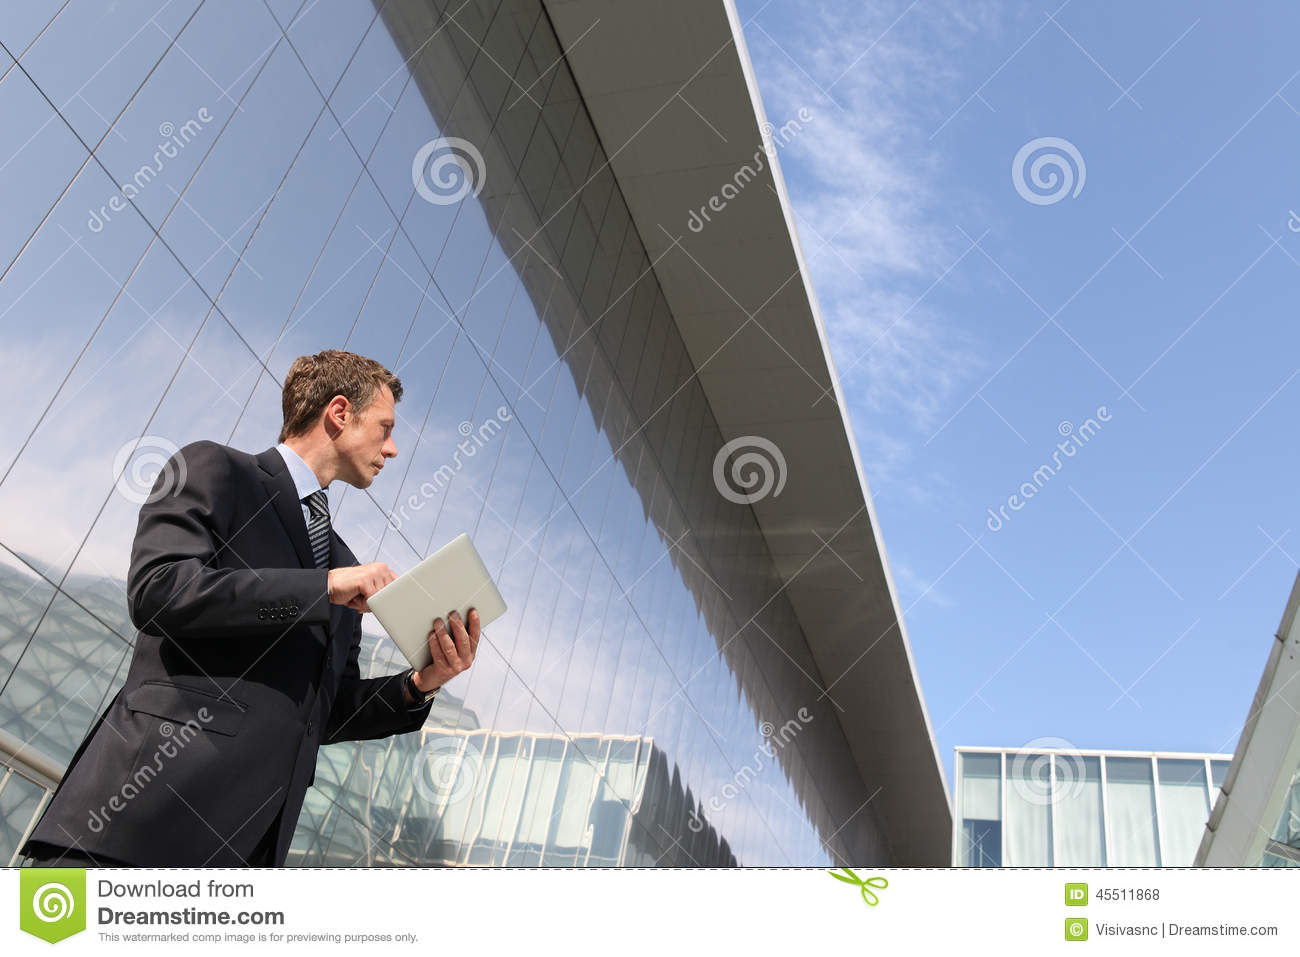 Businessman with tablet that looks far into the sky, in a scene of urban building, cloud computing